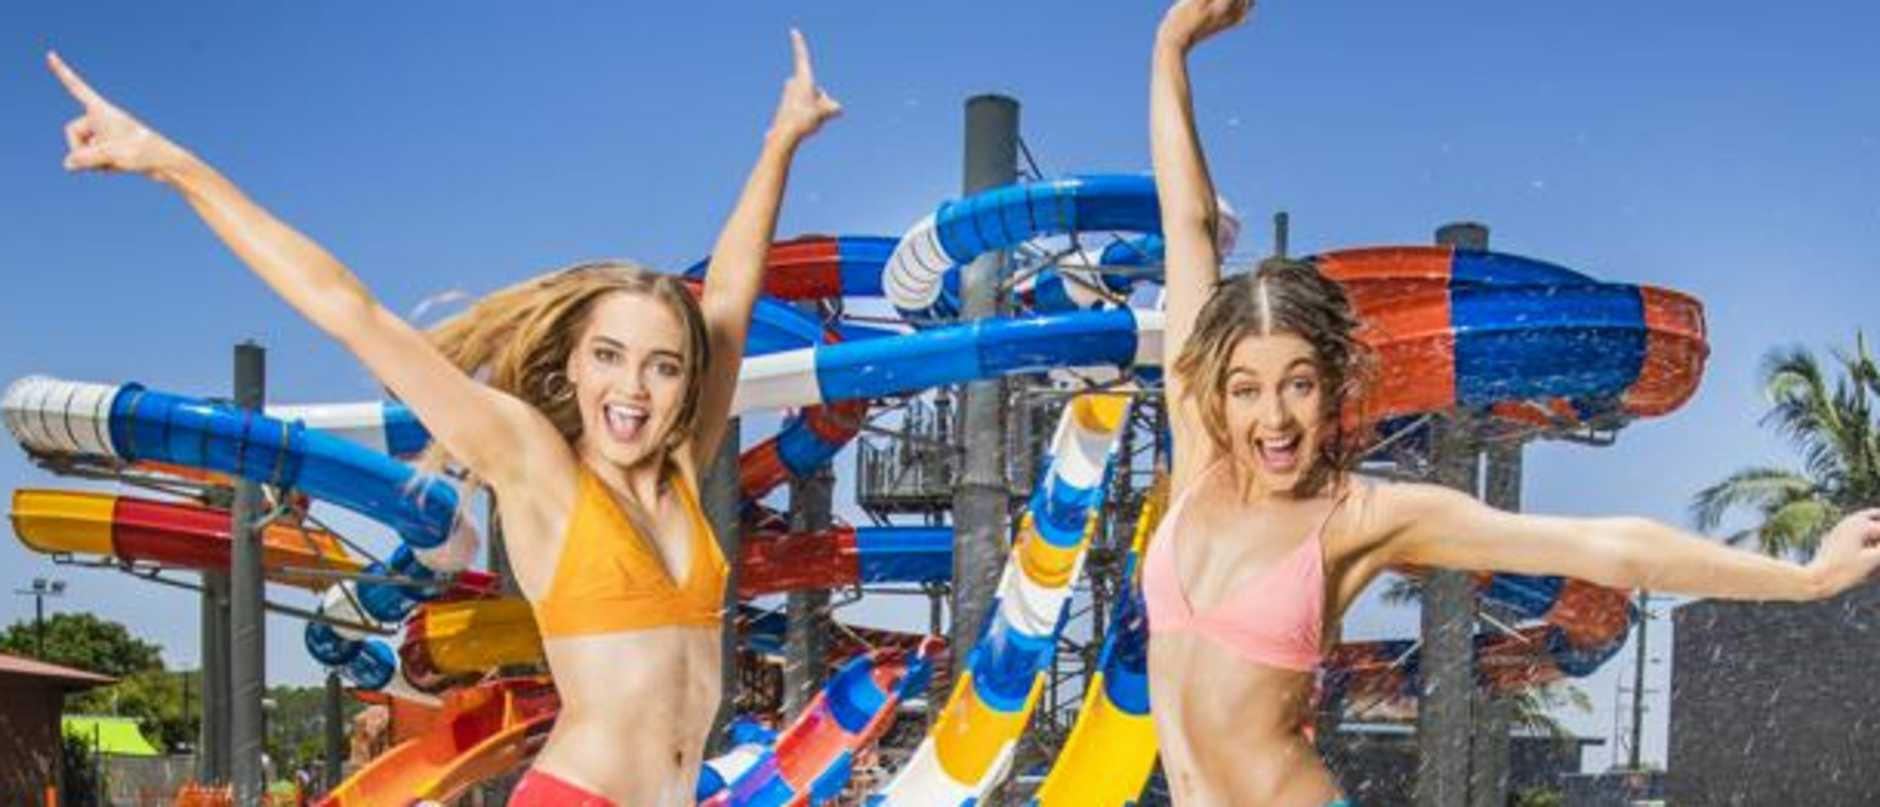 After struggling since the Thunder River Rapids tragedy, there are good signs for Dreamworld as its sister theme park prepares to throw open its new precinct.